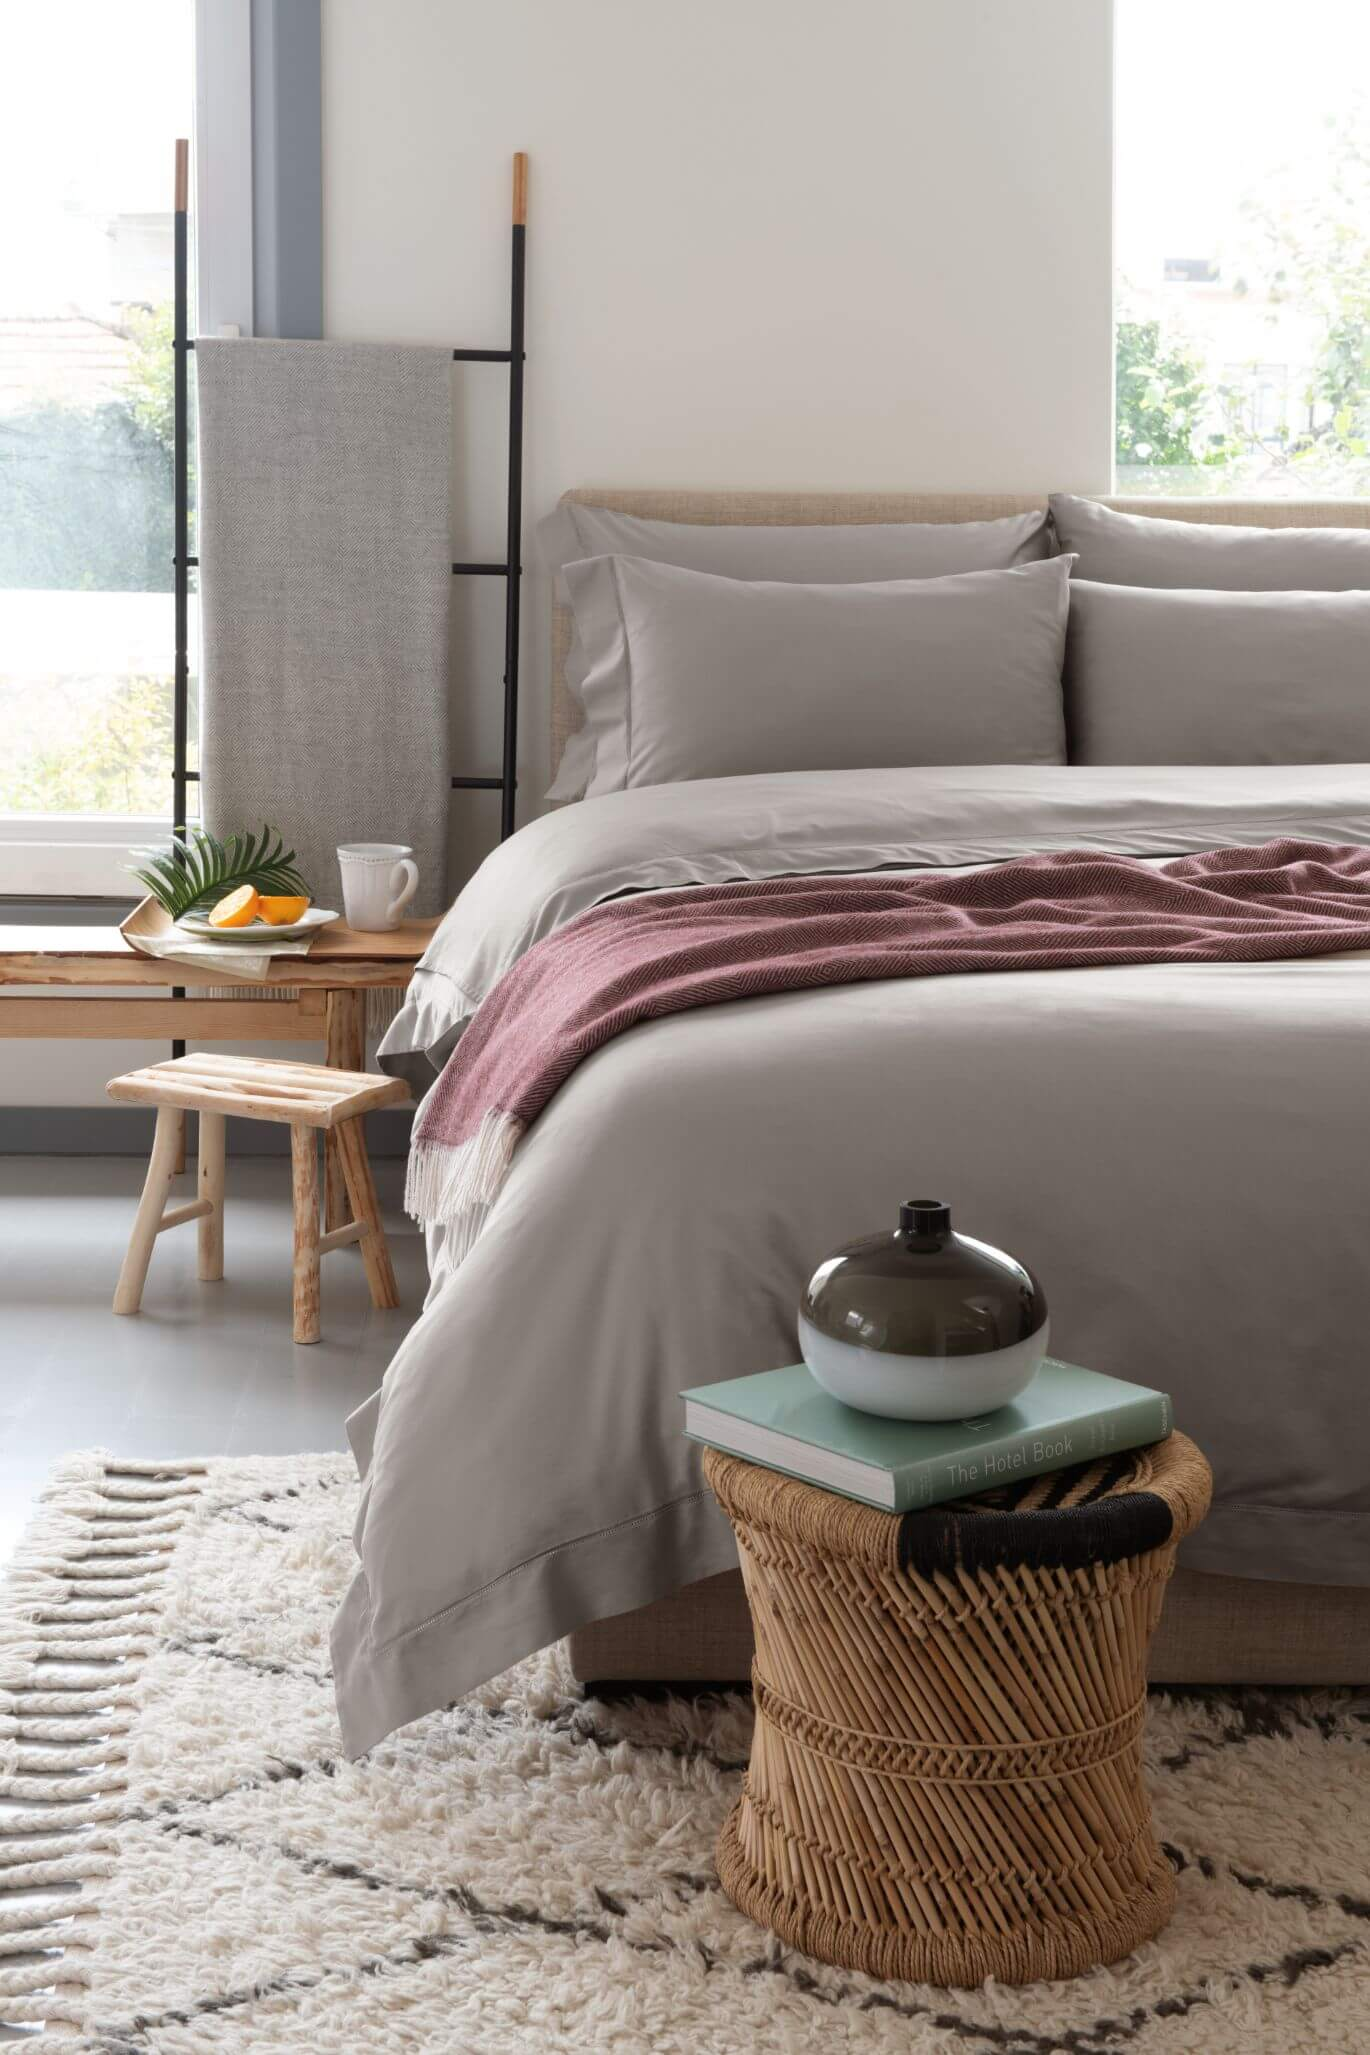 A bedroom with Marialma's bed sheets